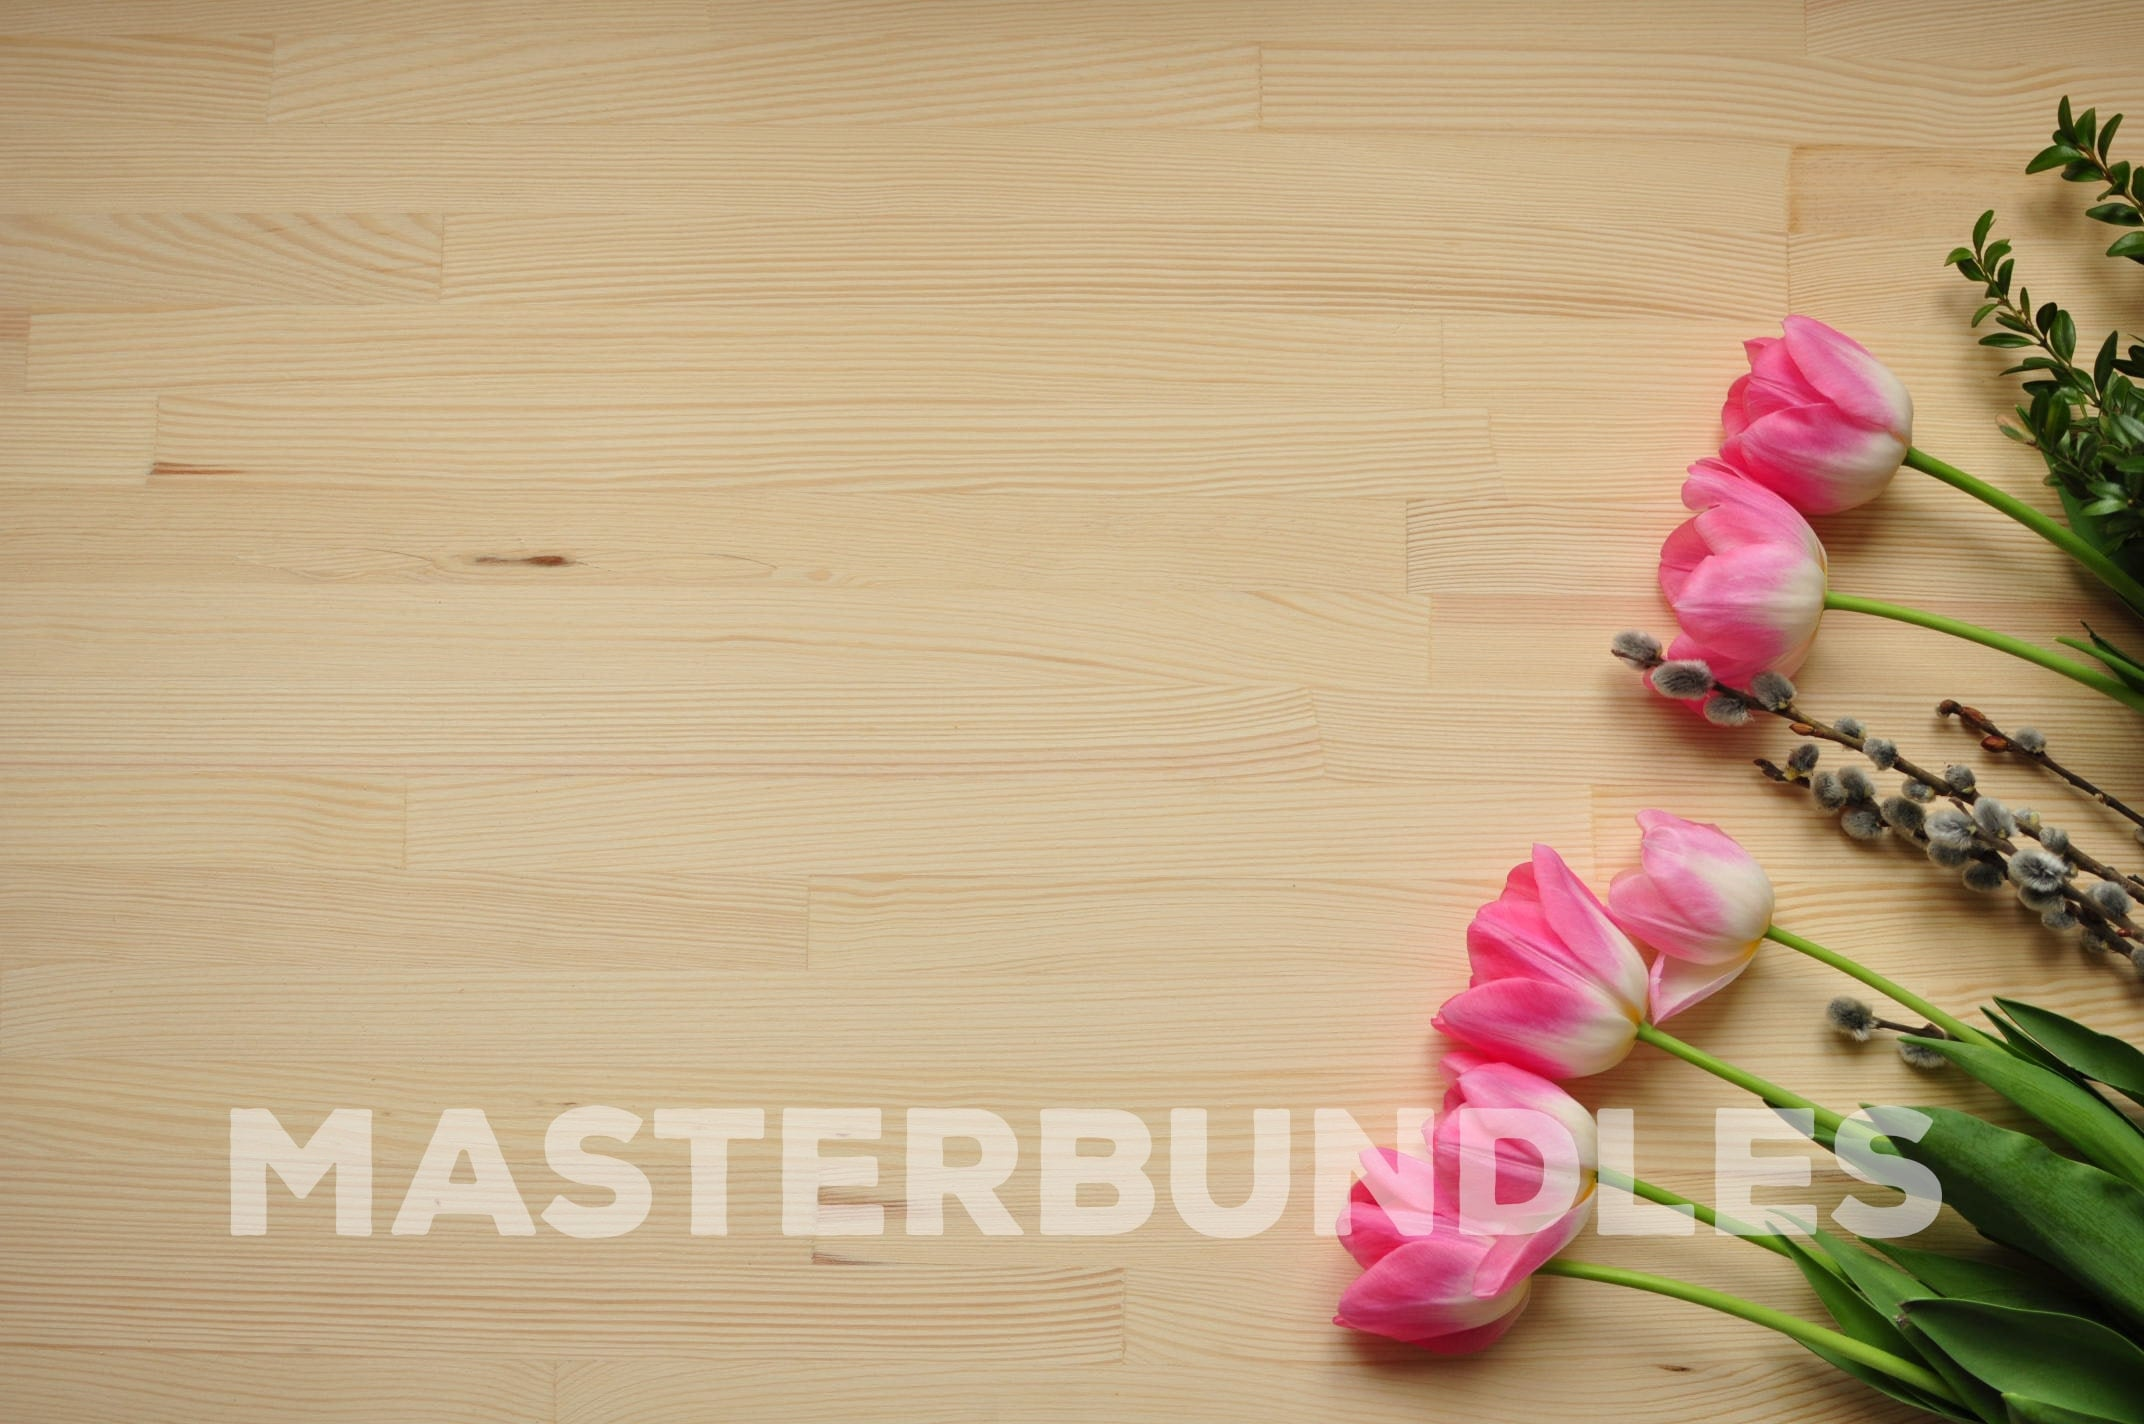 A wooden surface with pink tulips on it.